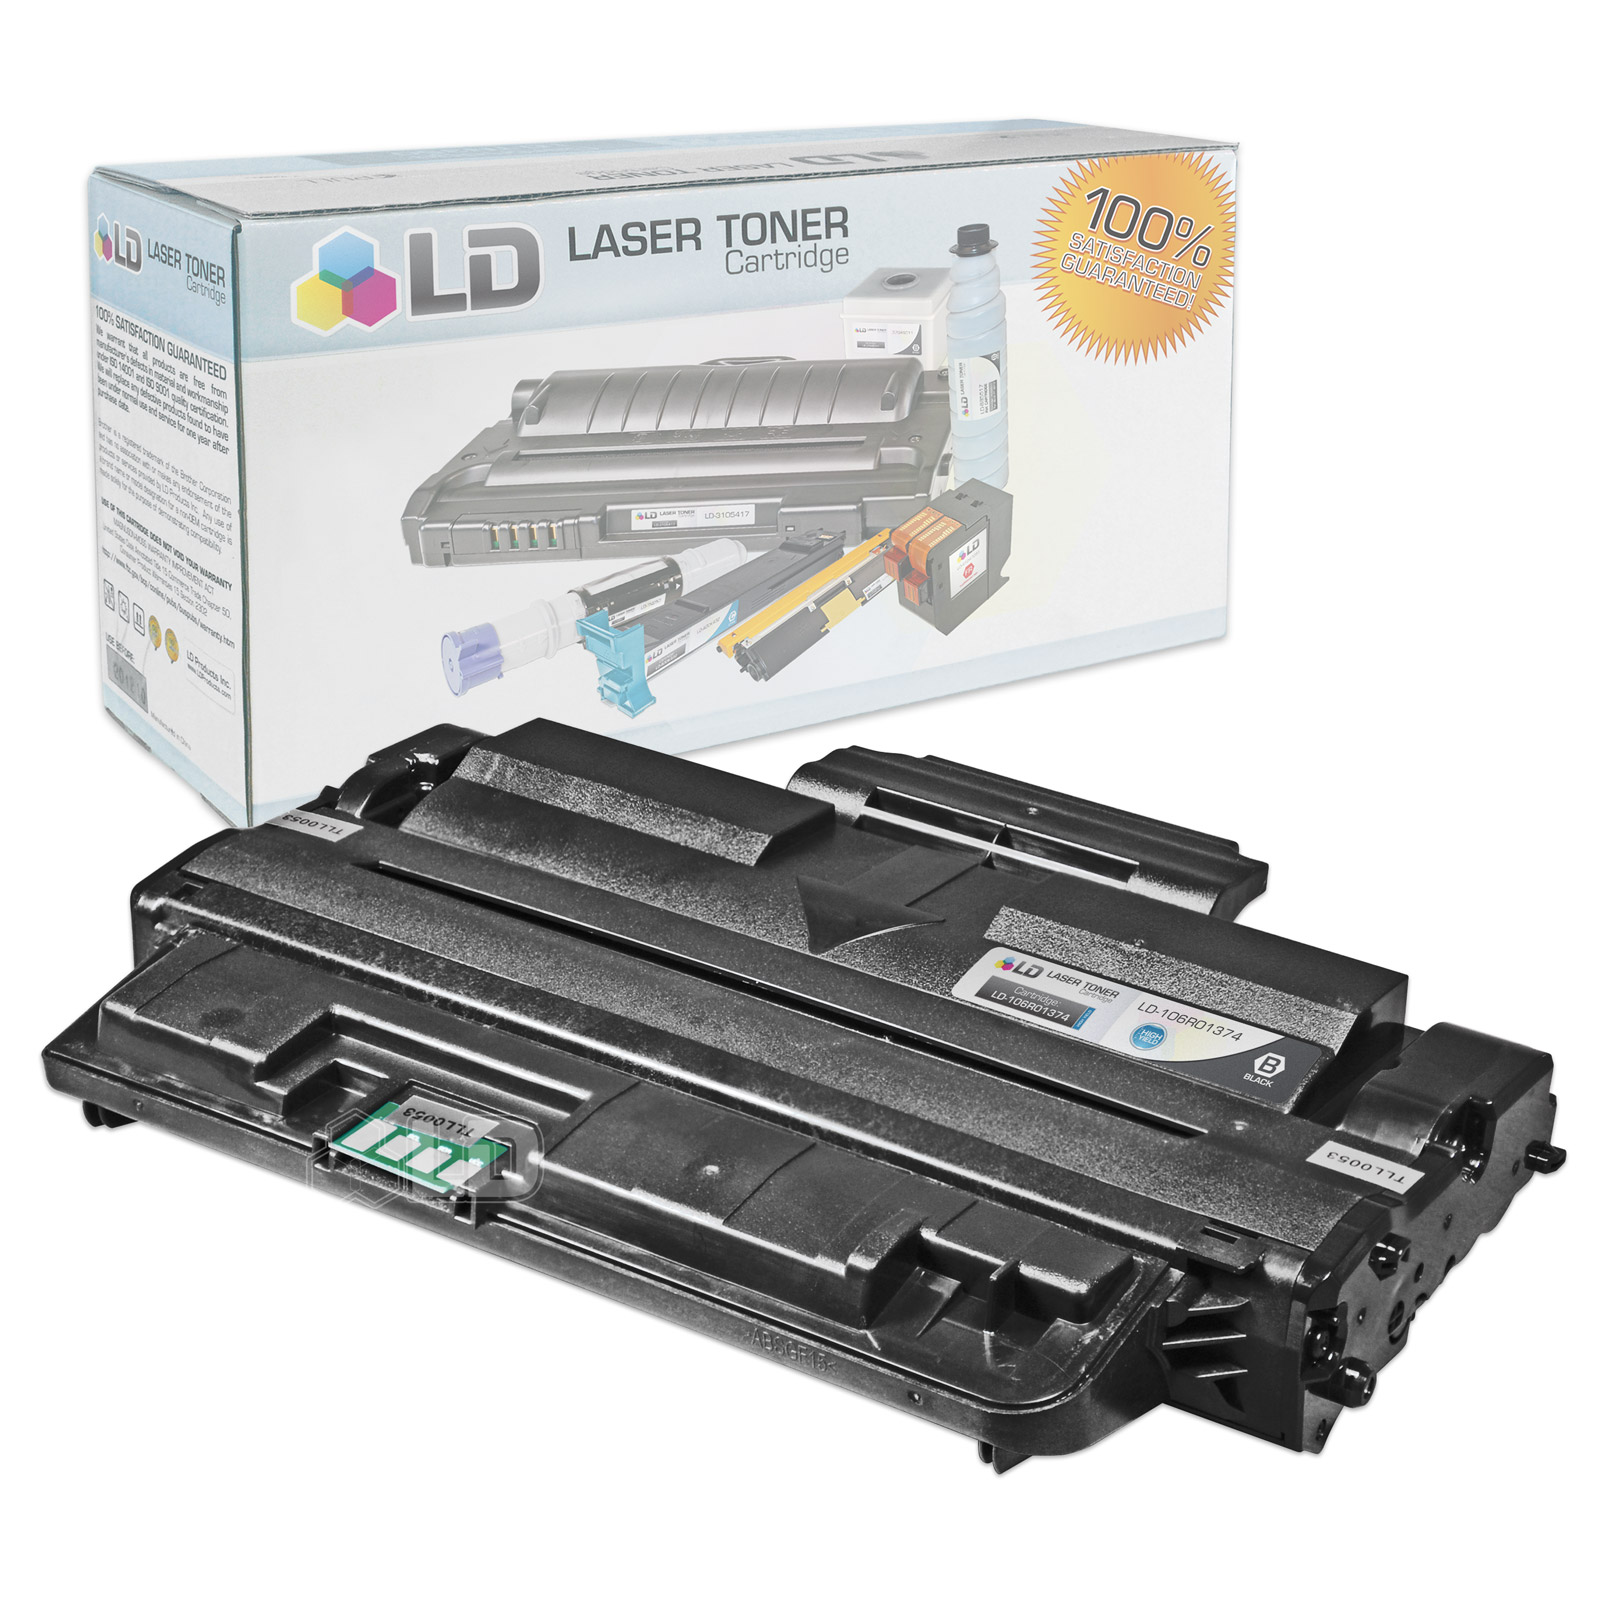 LD Compatible Replacement for Xerox 106R01374 High Yield Black Laser Toner Cartridge for use in Xerox Phaser 3250,